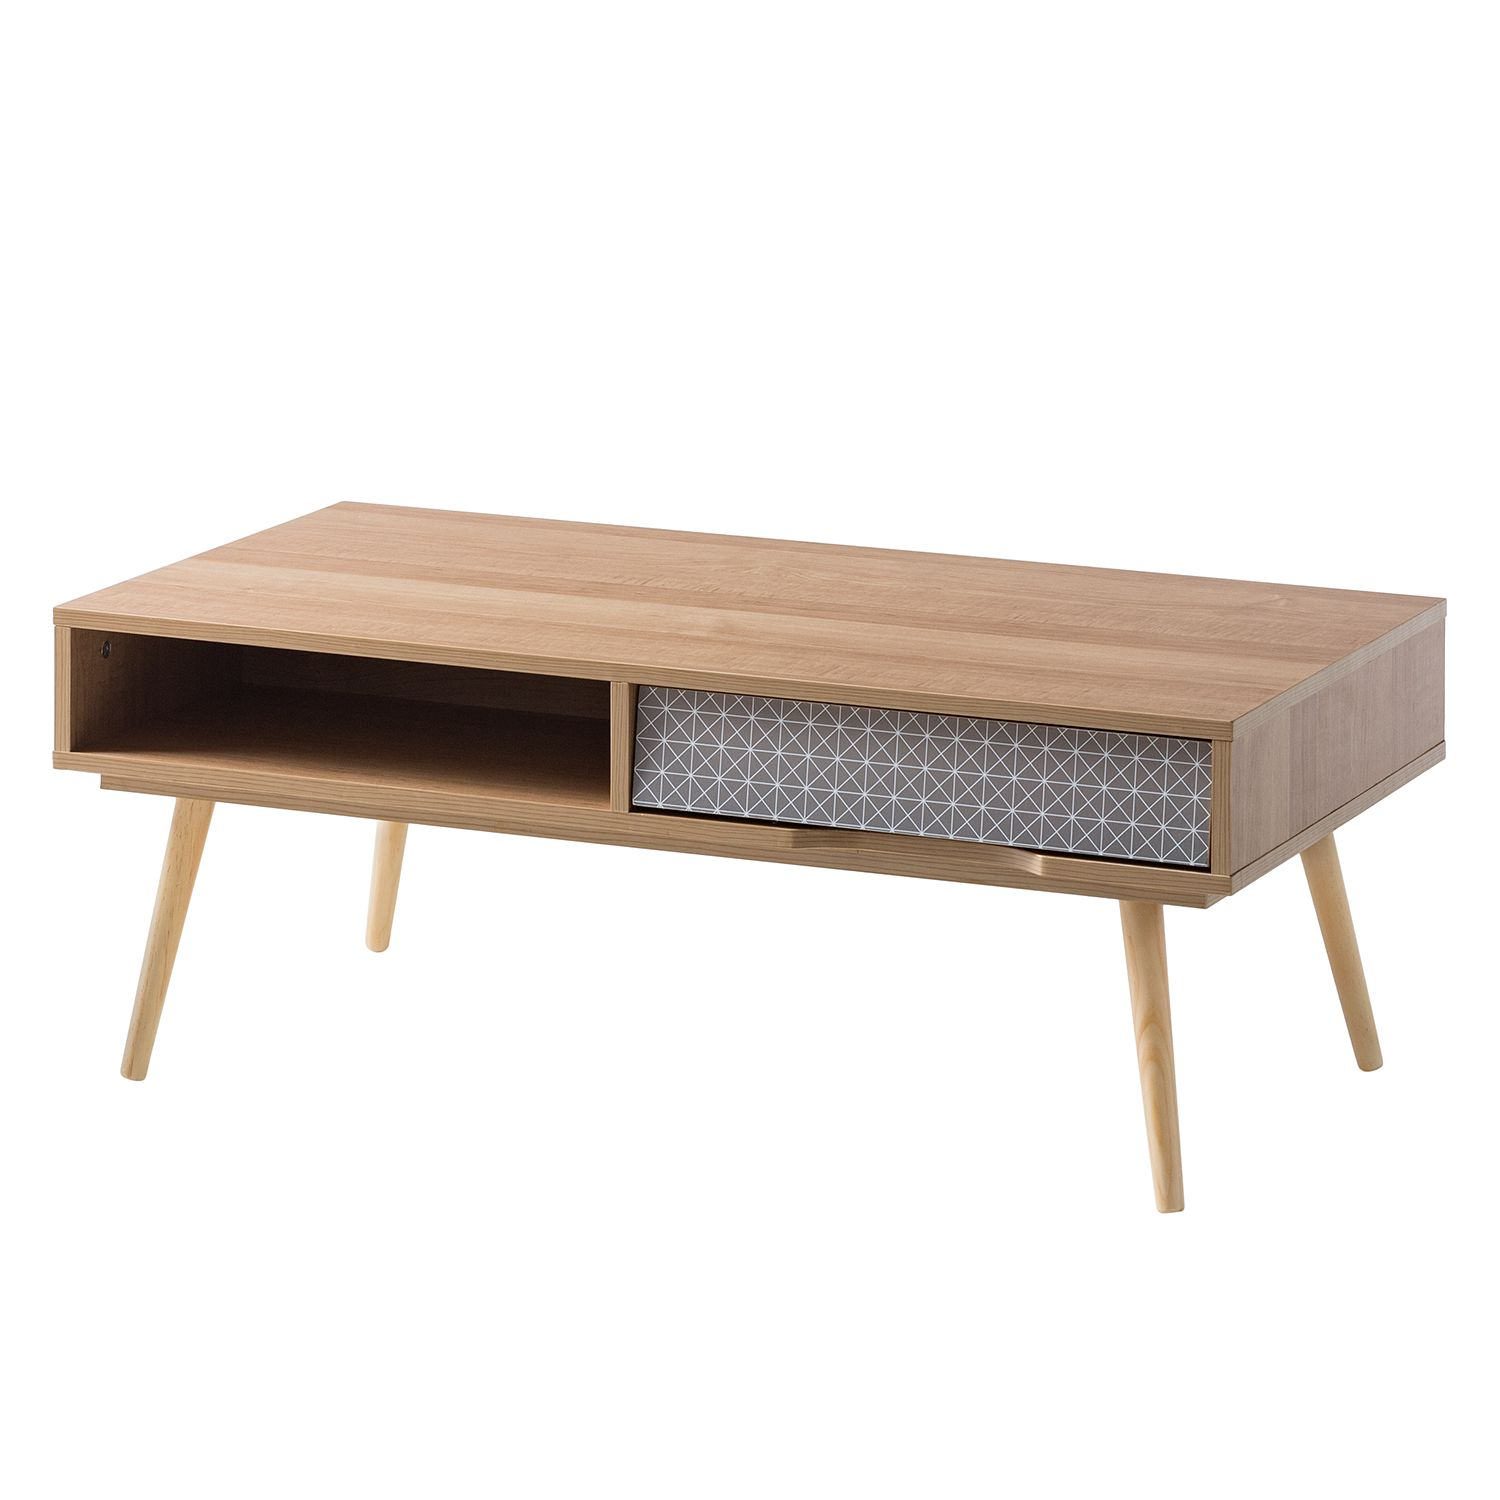 Table basse Longwick II - Partiellement en pin massif - Pin / Gris, mooved